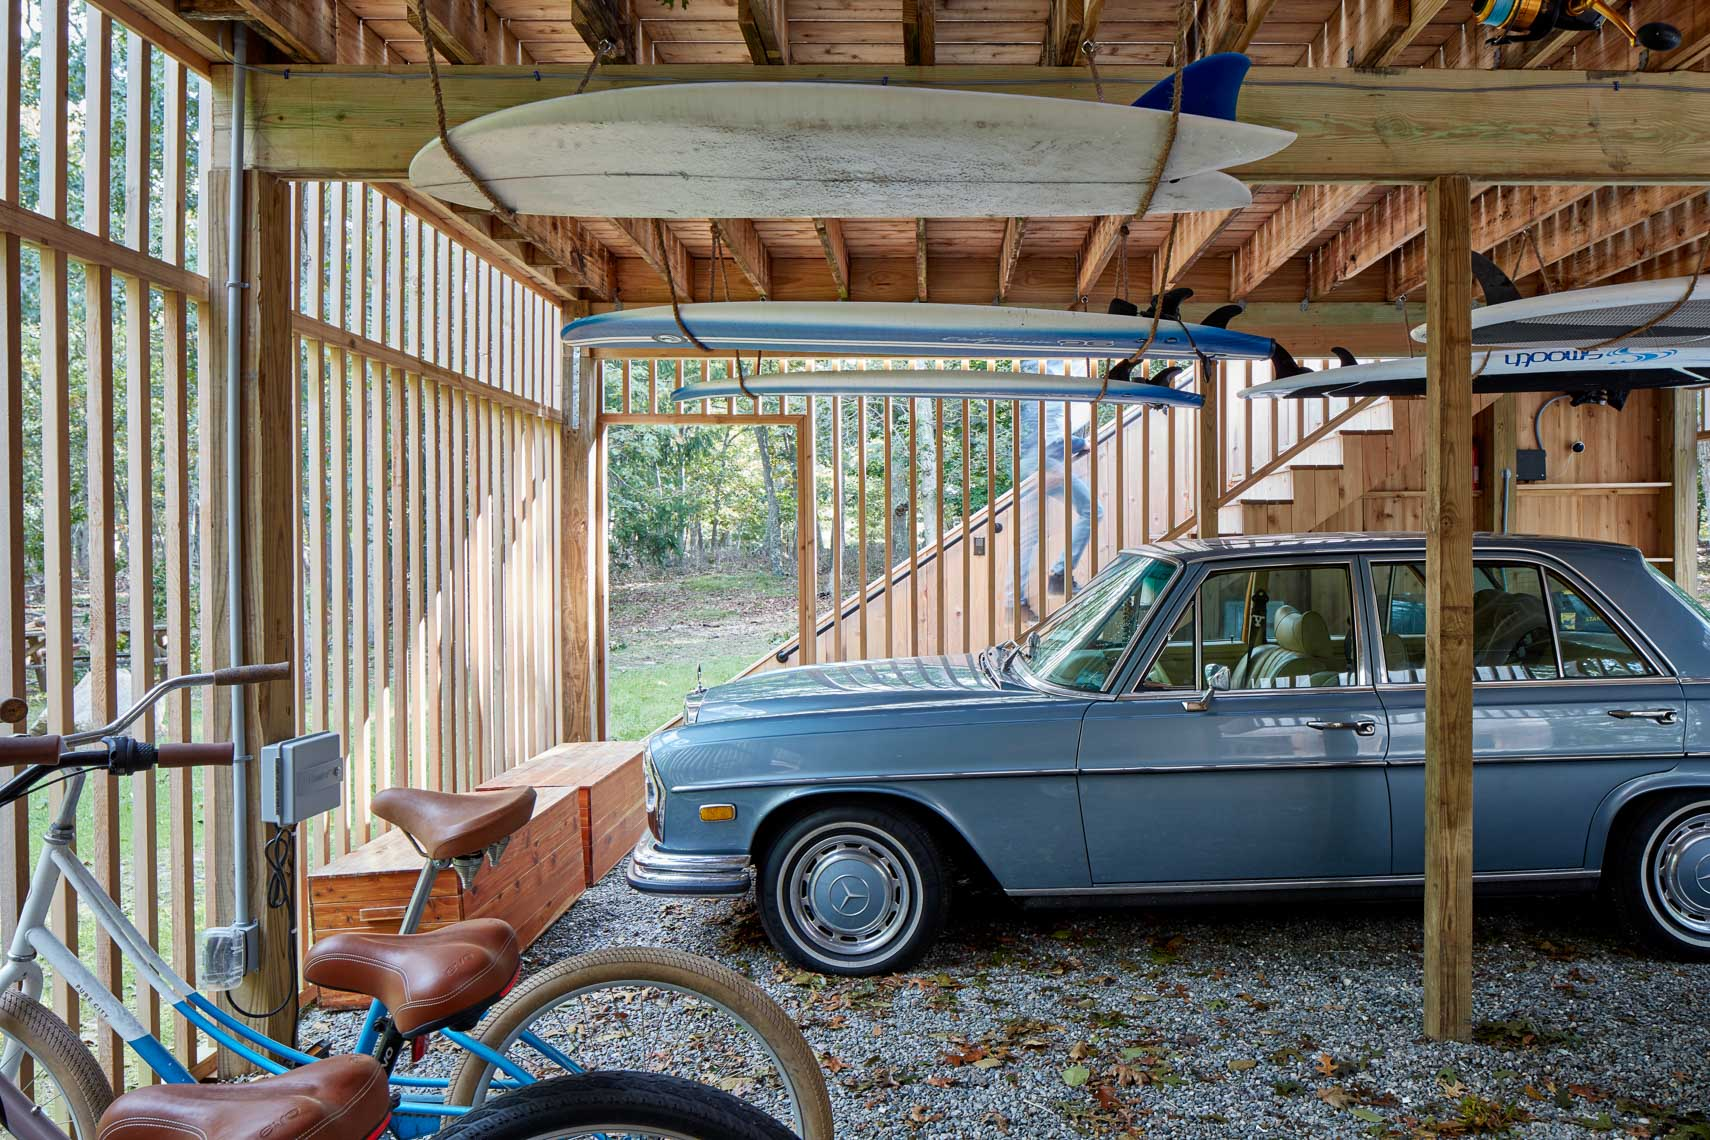 Classic Mercedes Benz in garage with surf boards hanging overhead